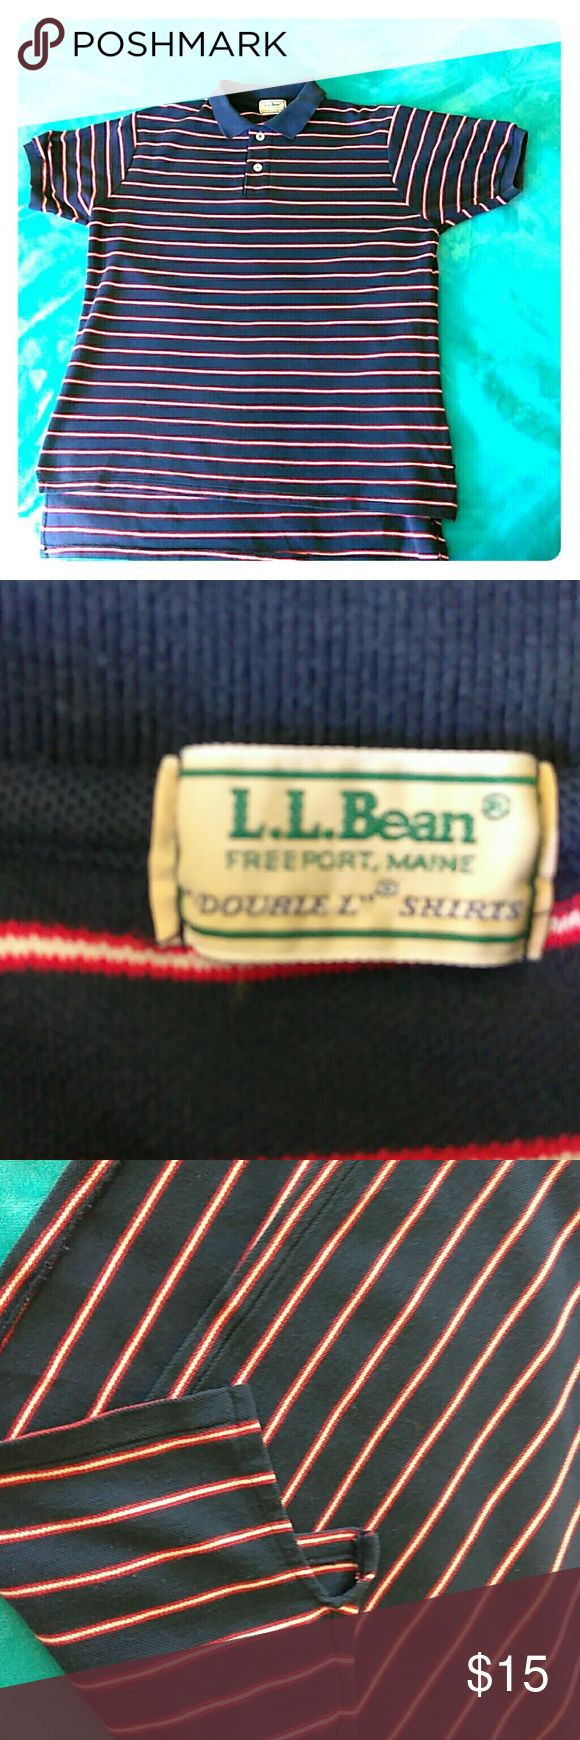 L.L. Bean 100% Cotton Polo Shirt L.L. Bean 100% Cotton Polo Shirt. Navy blue with thin red and white stripes. Two buttons on the front. Size extra large. L.L. Bean Shirts Polos